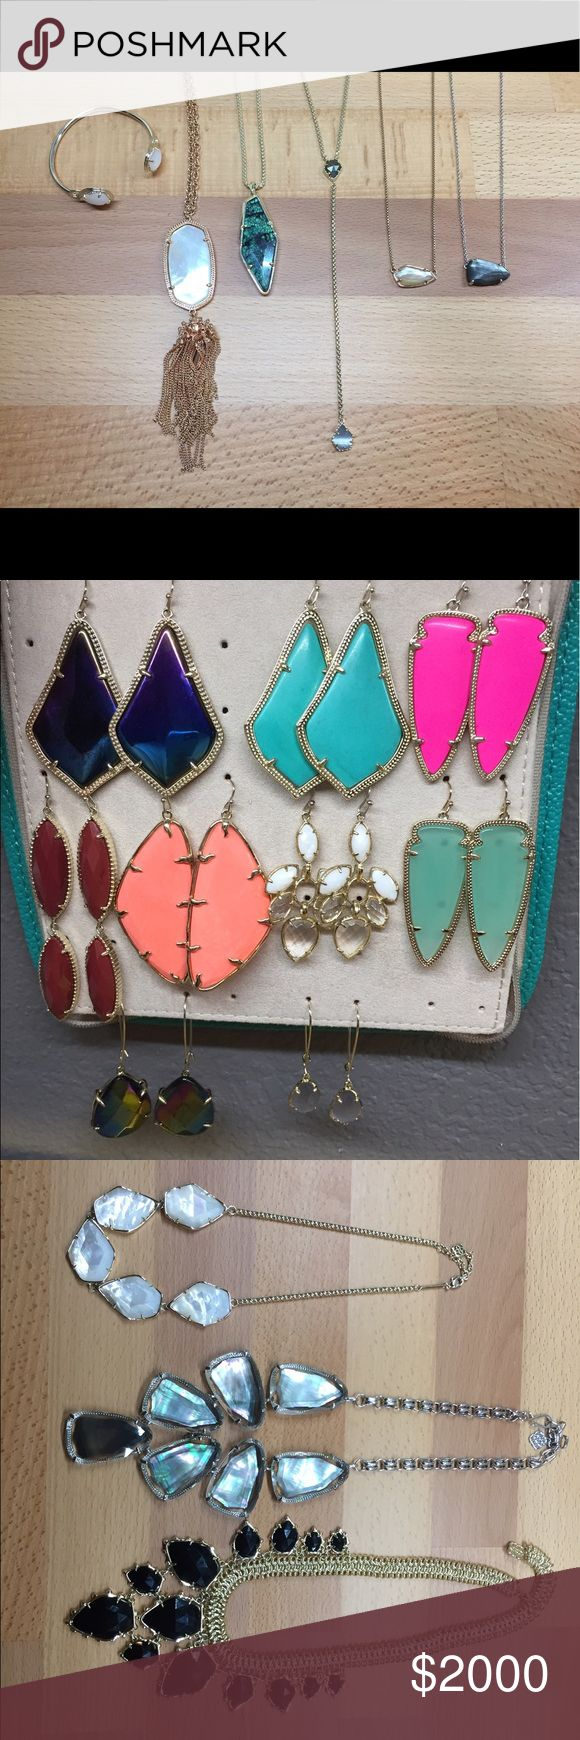 Not for Sale! My Kendra Scott collection thus far. Just displaying some of the Kendra Scott items I've collected so far. Some are for sale or have been sold. Check the other listings to see what's available for sale. Kendra Scott Jewelry Earrings